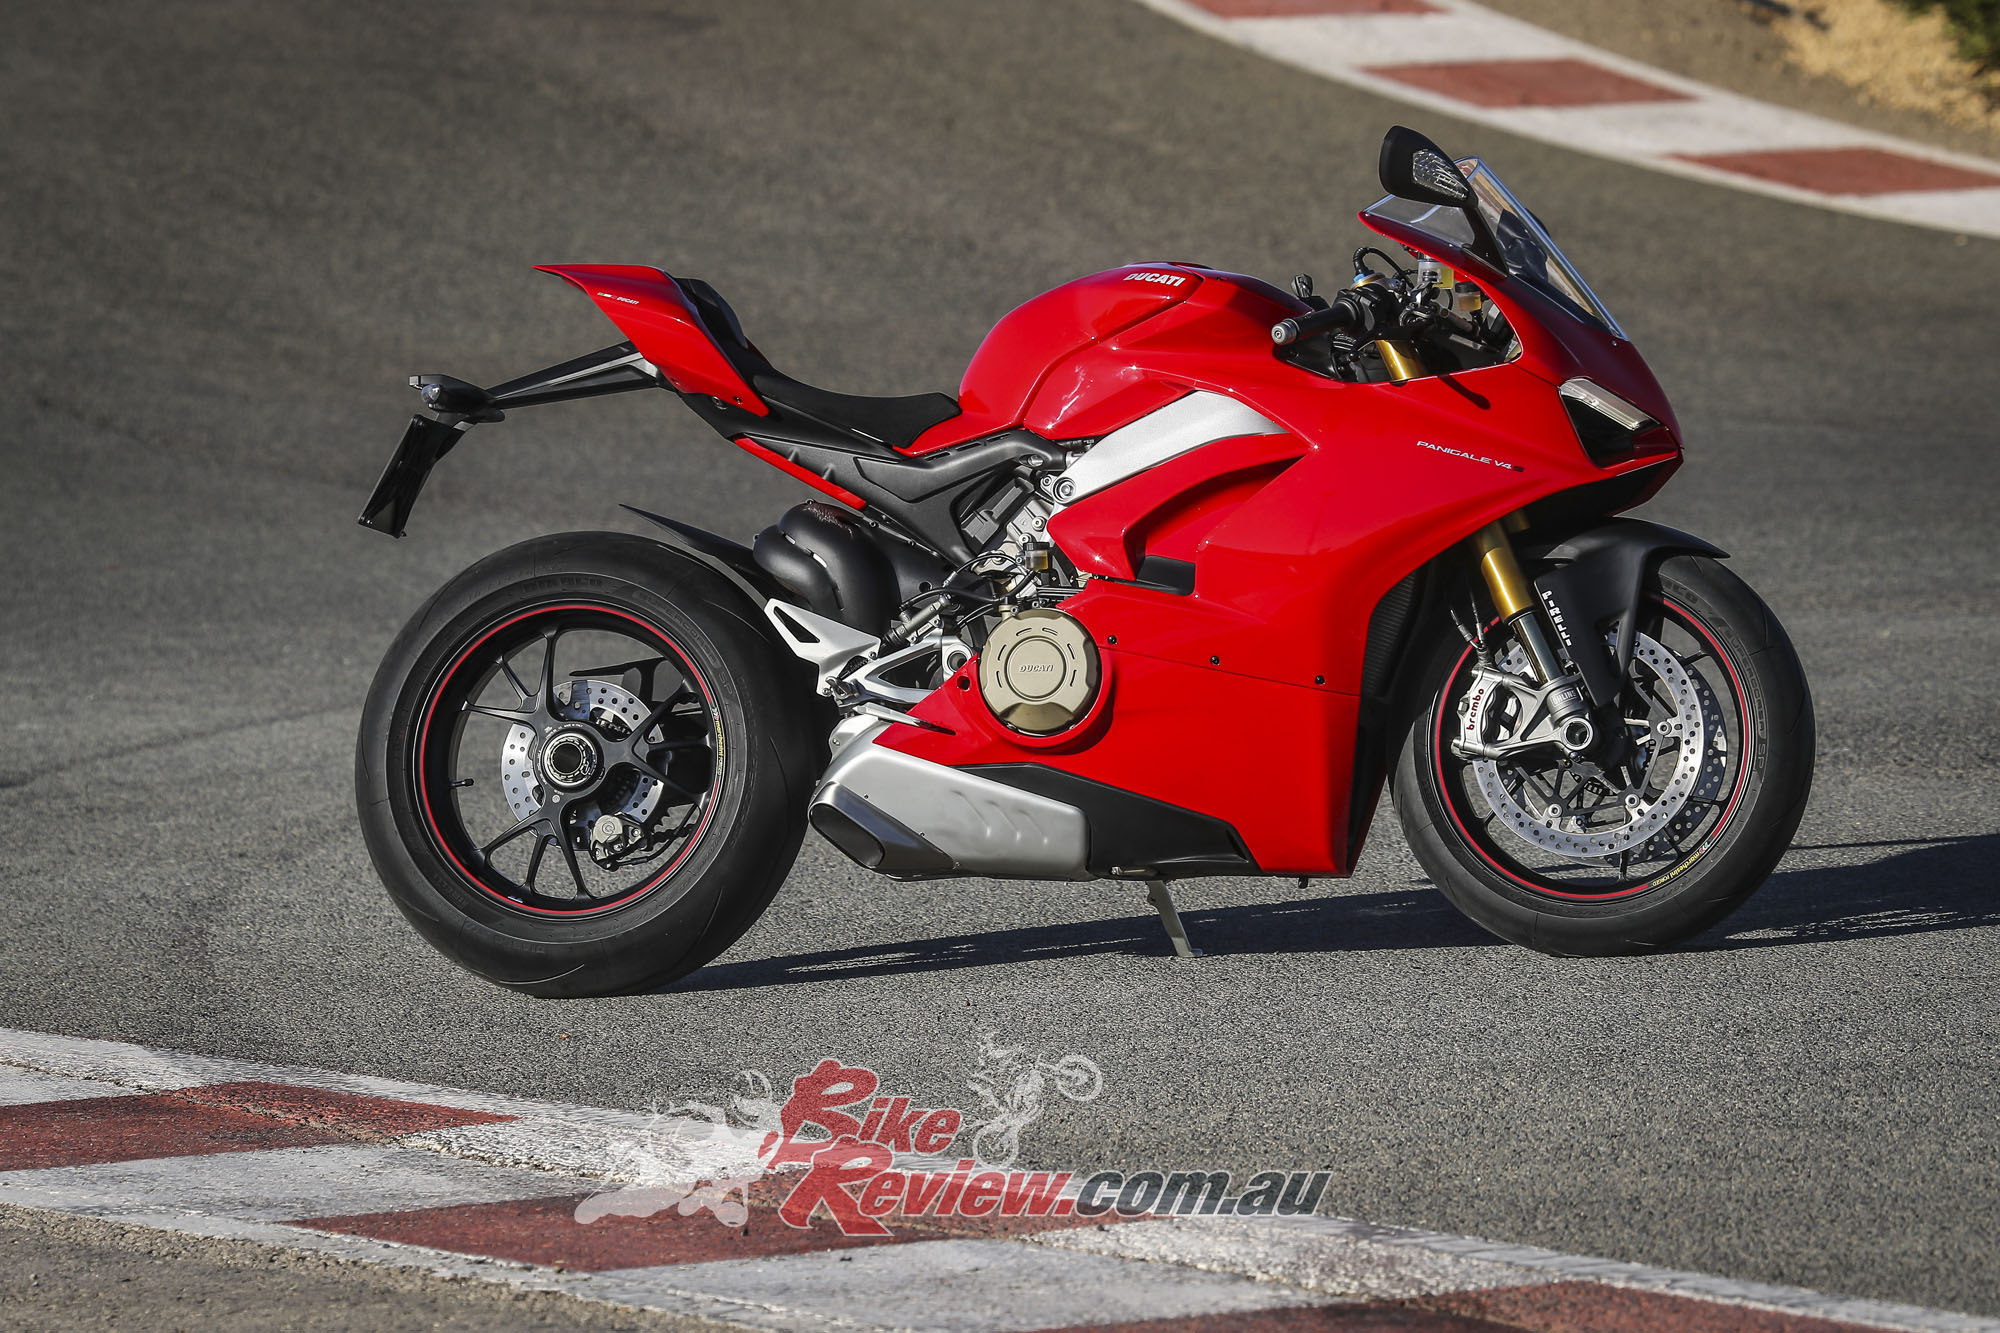 press intro ride first impression ducati panigale v4 s. Black Bedroom Furniture Sets. Home Design Ideas